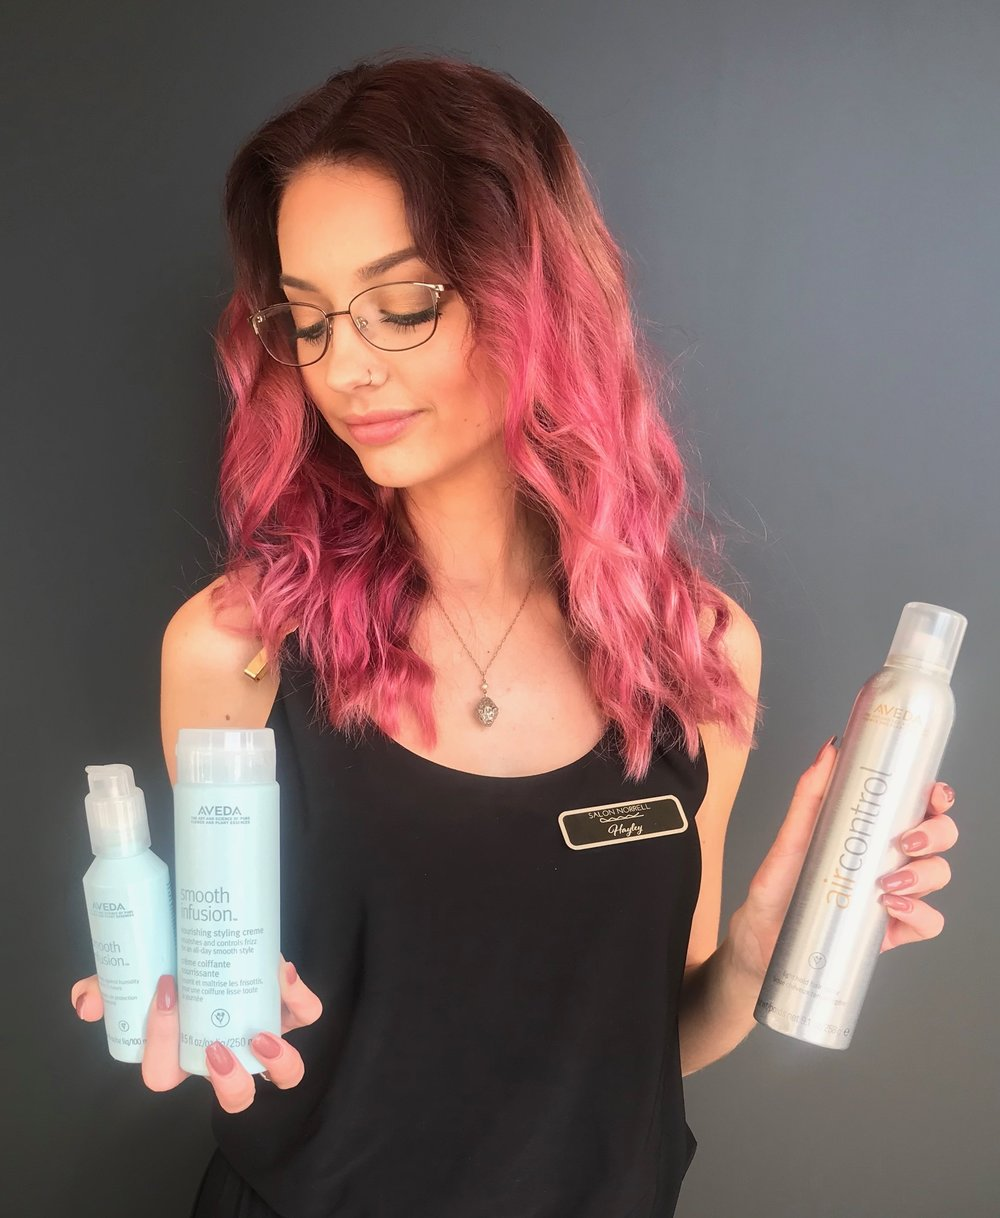 Combat frizz to the fullest… - by using a style prep, styling agent, and a finishing spray. Scroll down and read more about Aveda Brand Ambassador, Hayley's must haves!